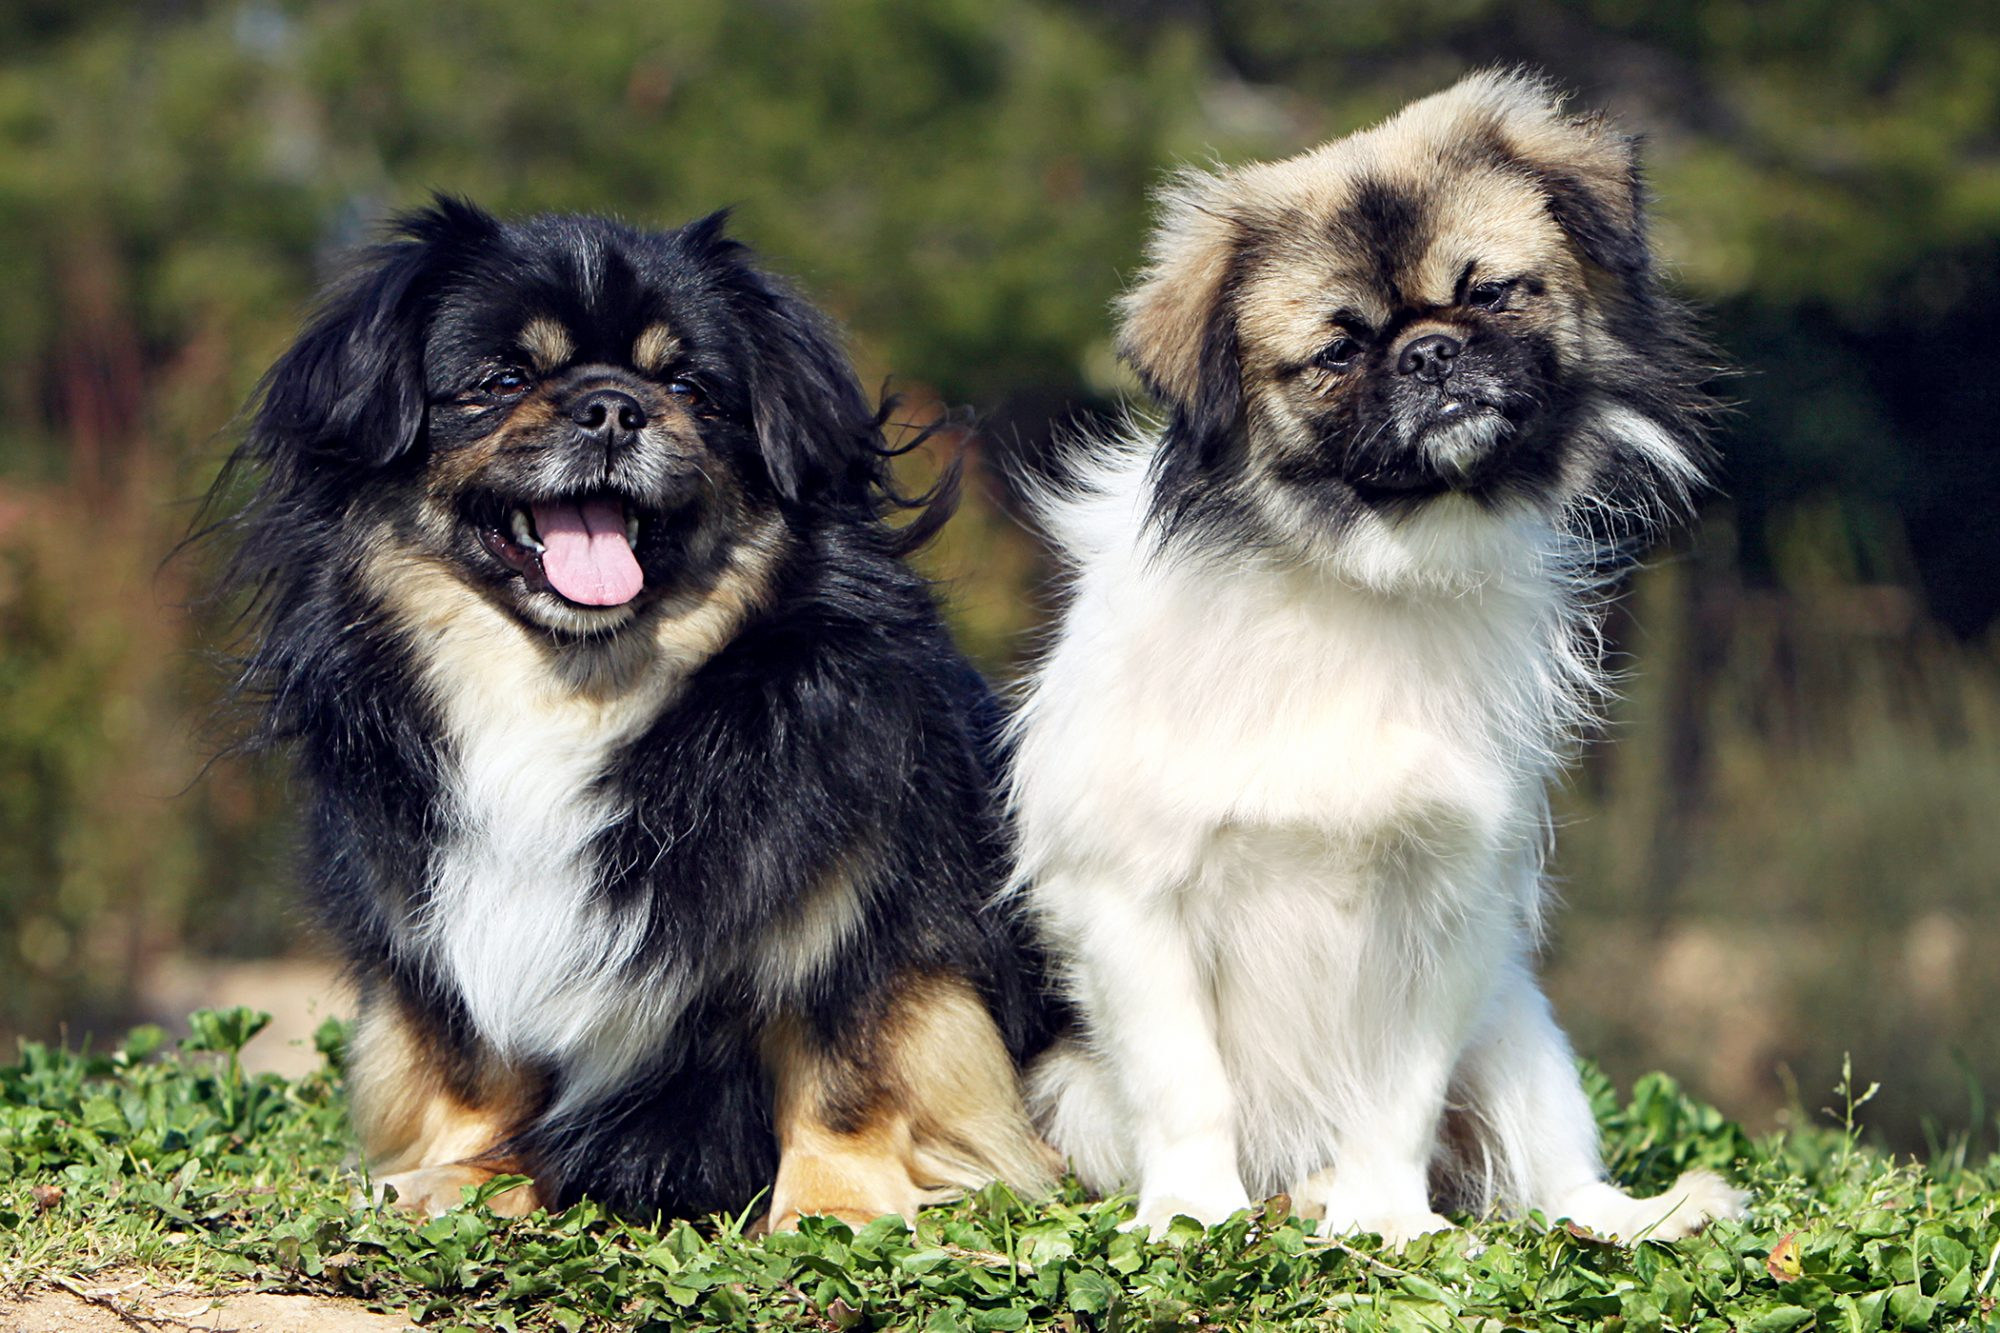 two tibetan spaniel dogs sitting next to each other outside